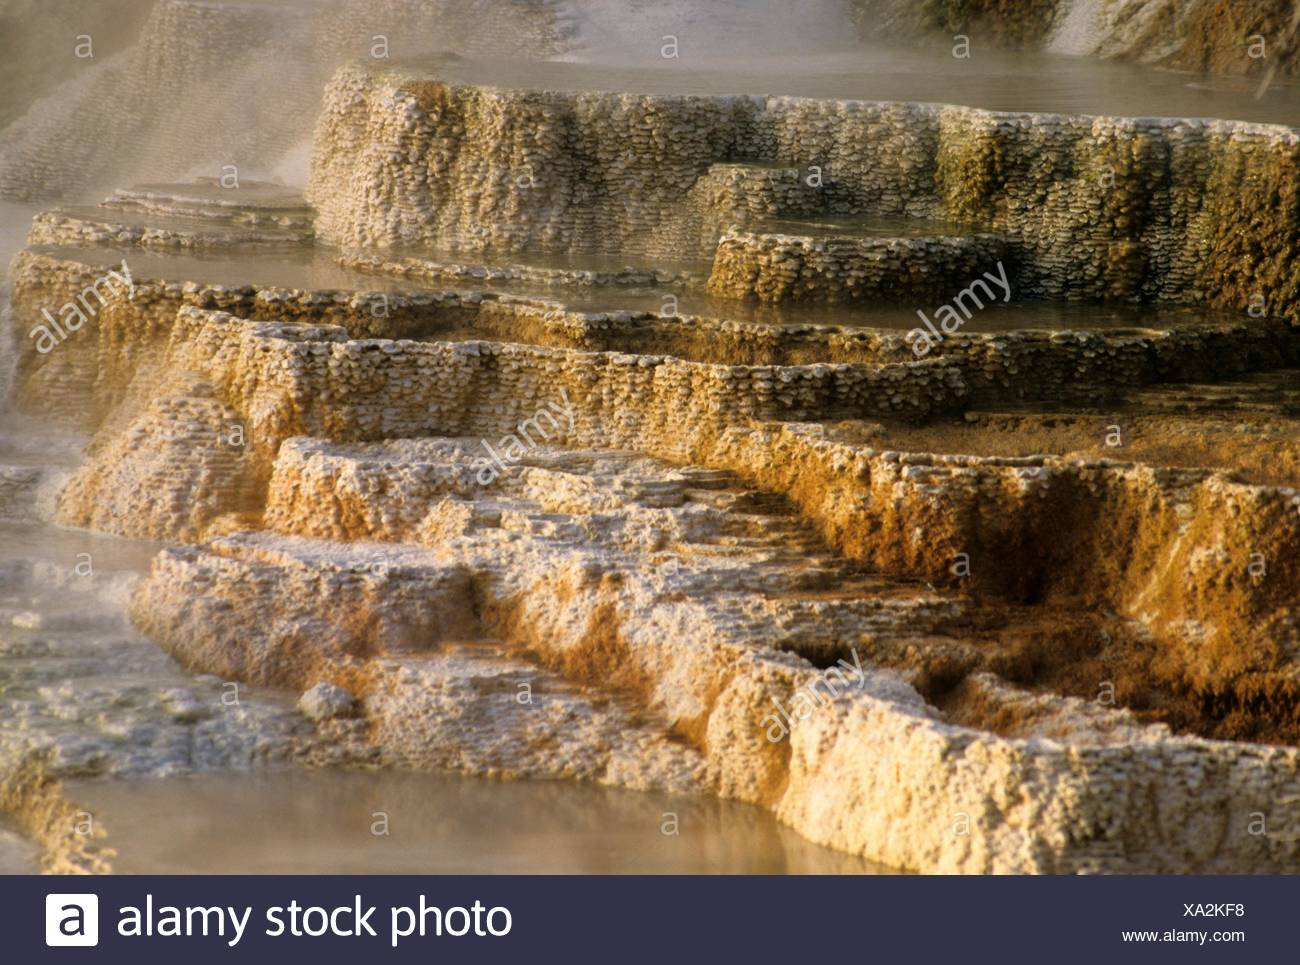 Canary Spring at Mammoth Hot Springs, Yellowstone National Park, Wyoming. - Stock Image